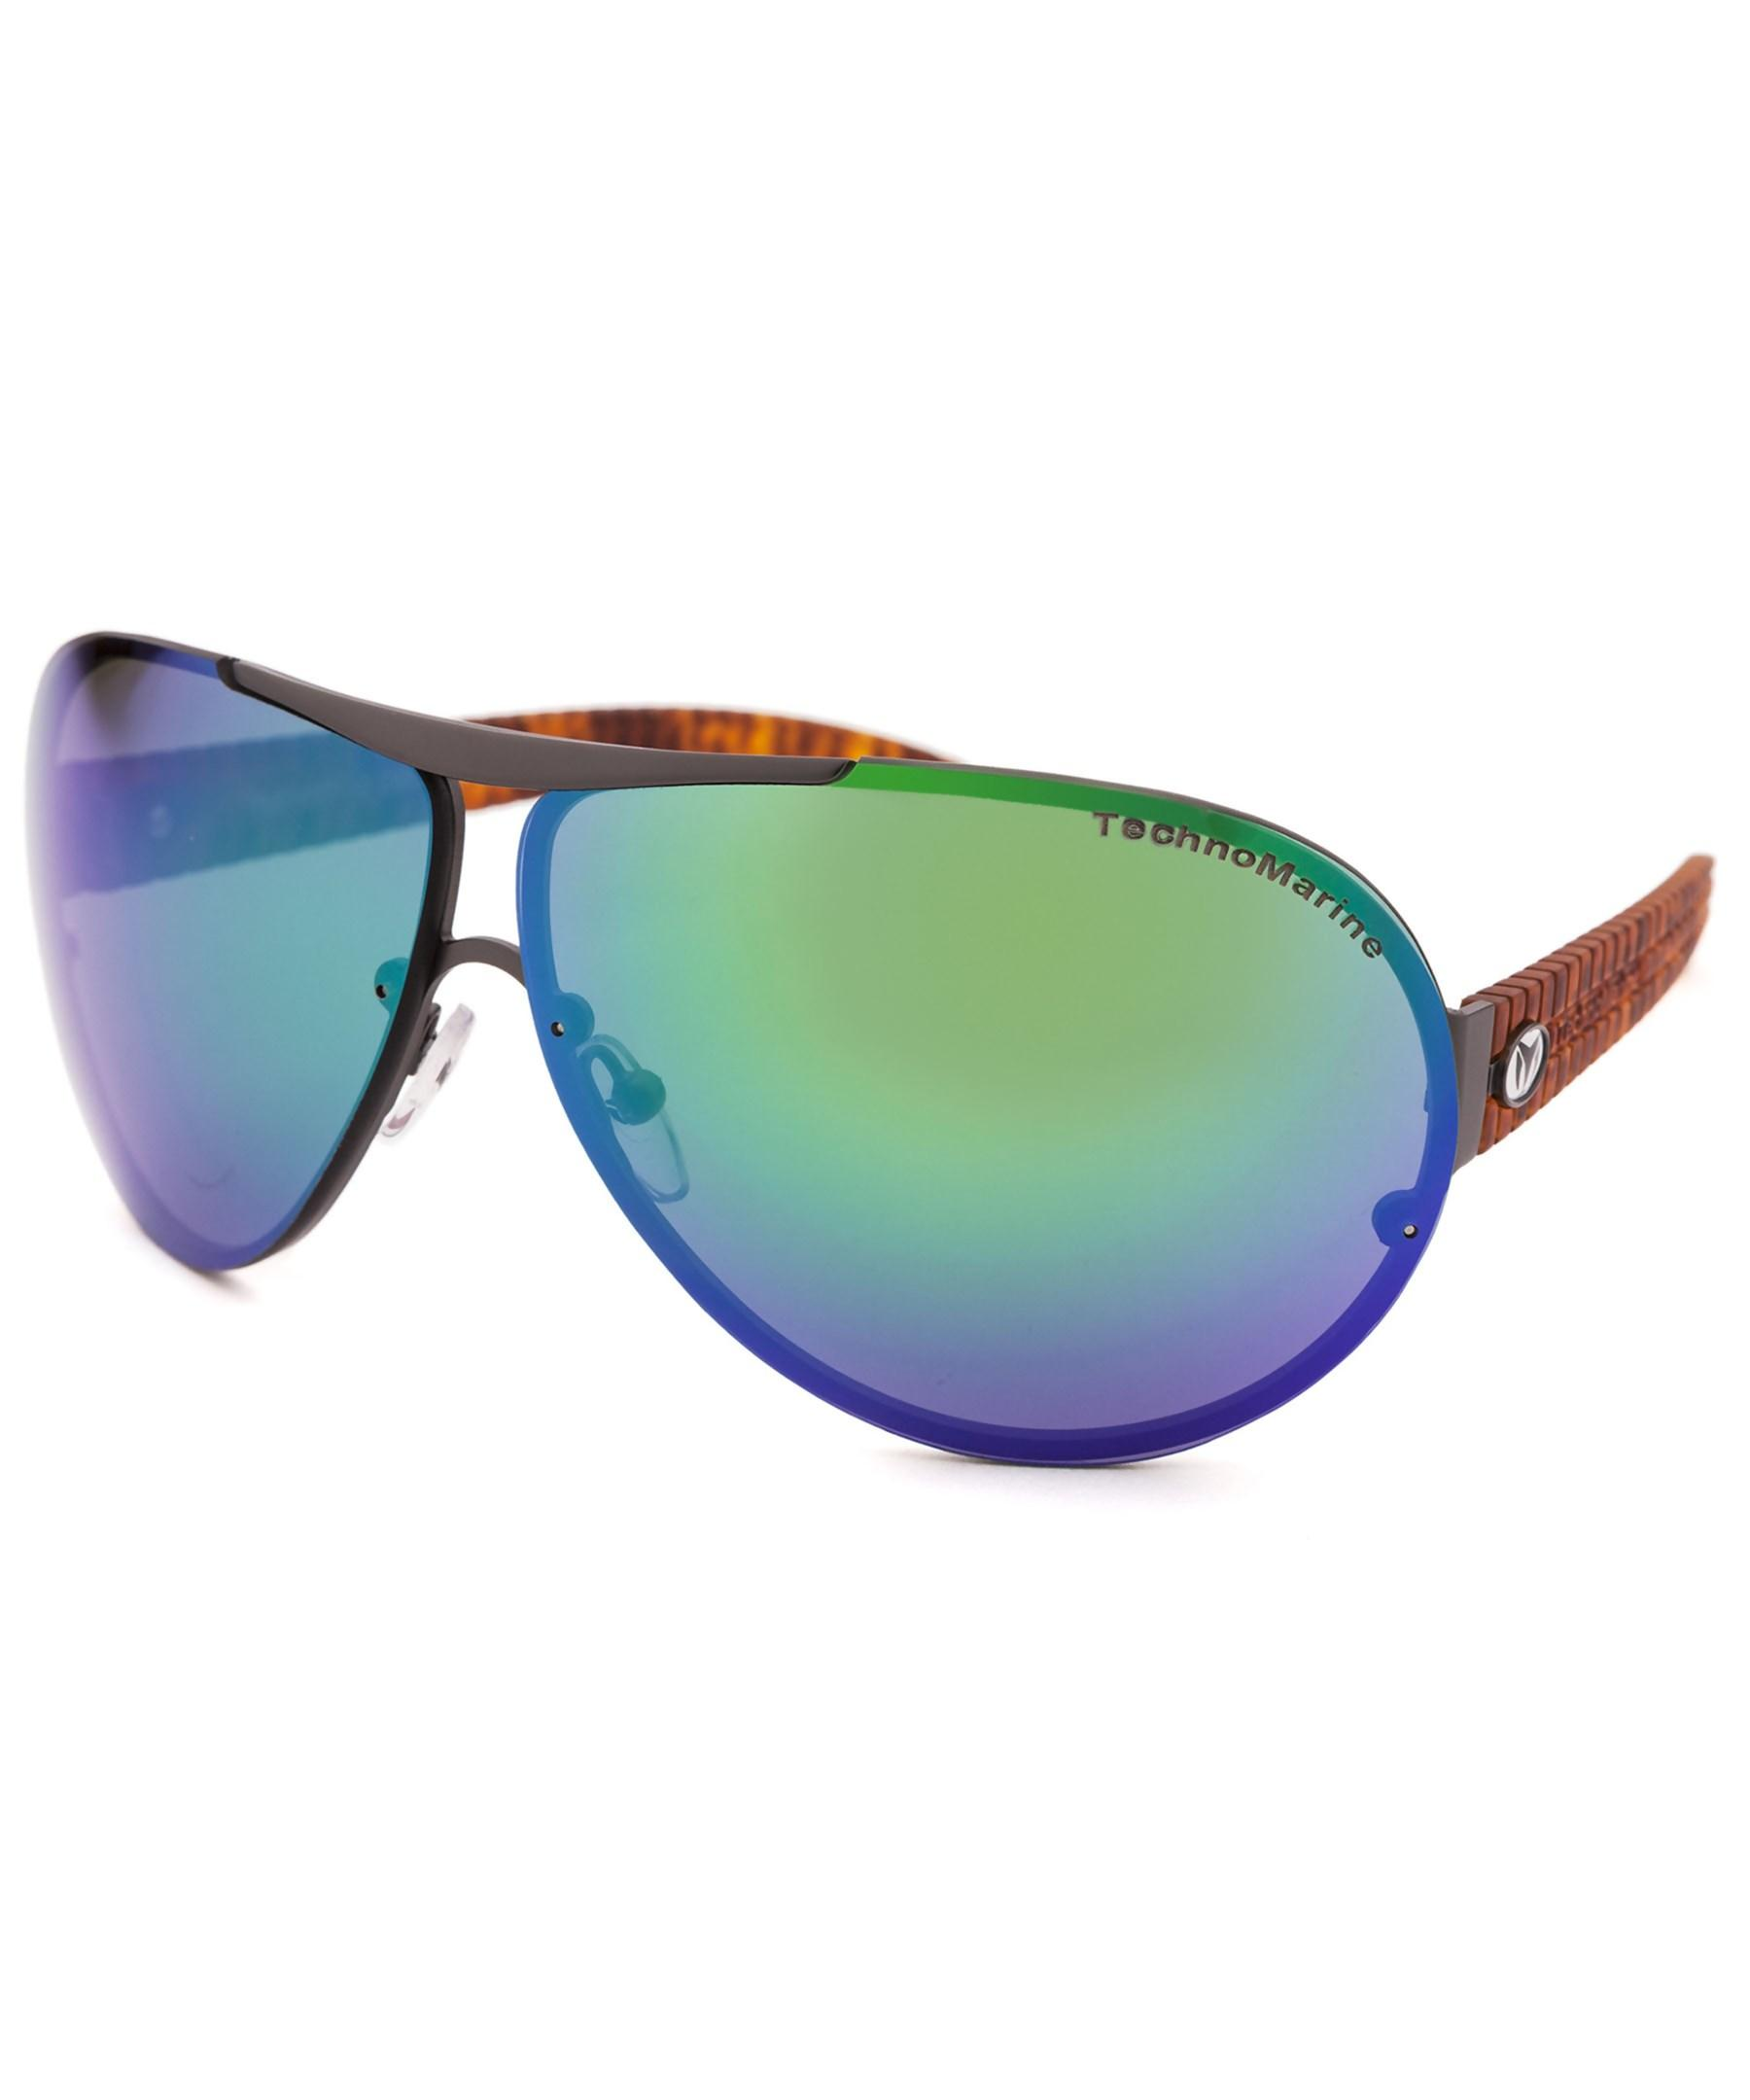 technomarine sunglasses pilot arena louisiana brigade